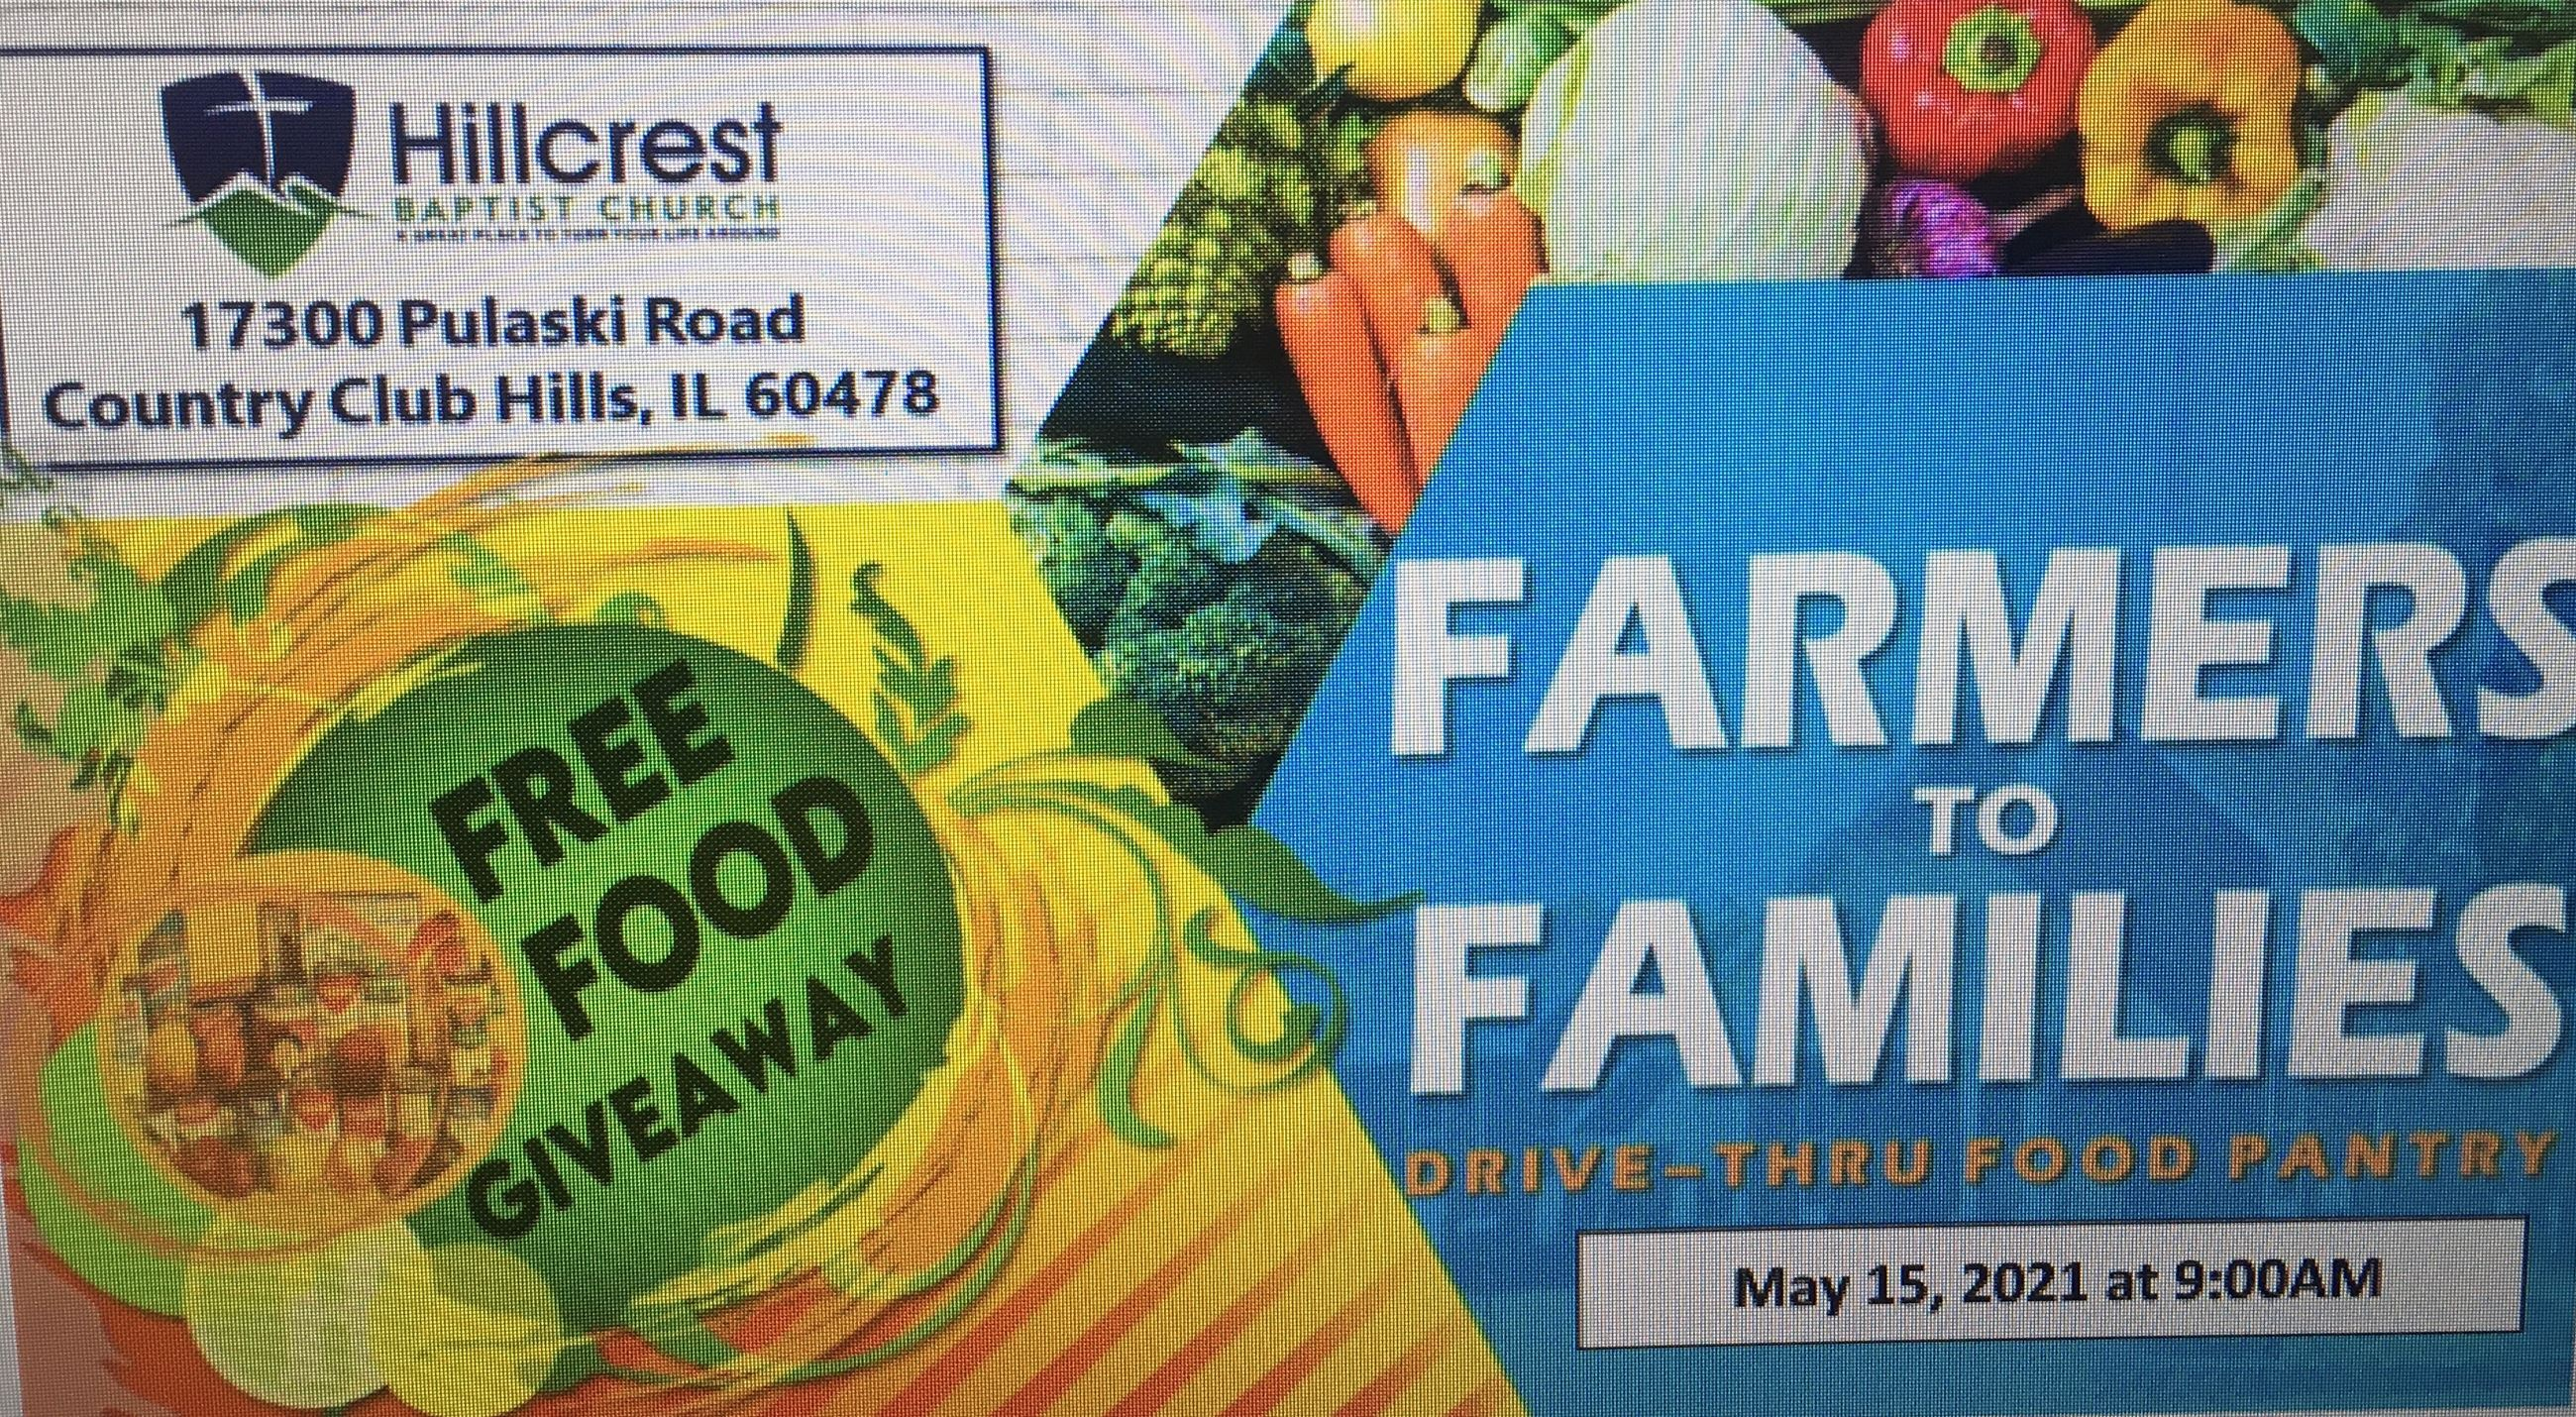 Drive Thru Food Pantry Flyer for May 15th